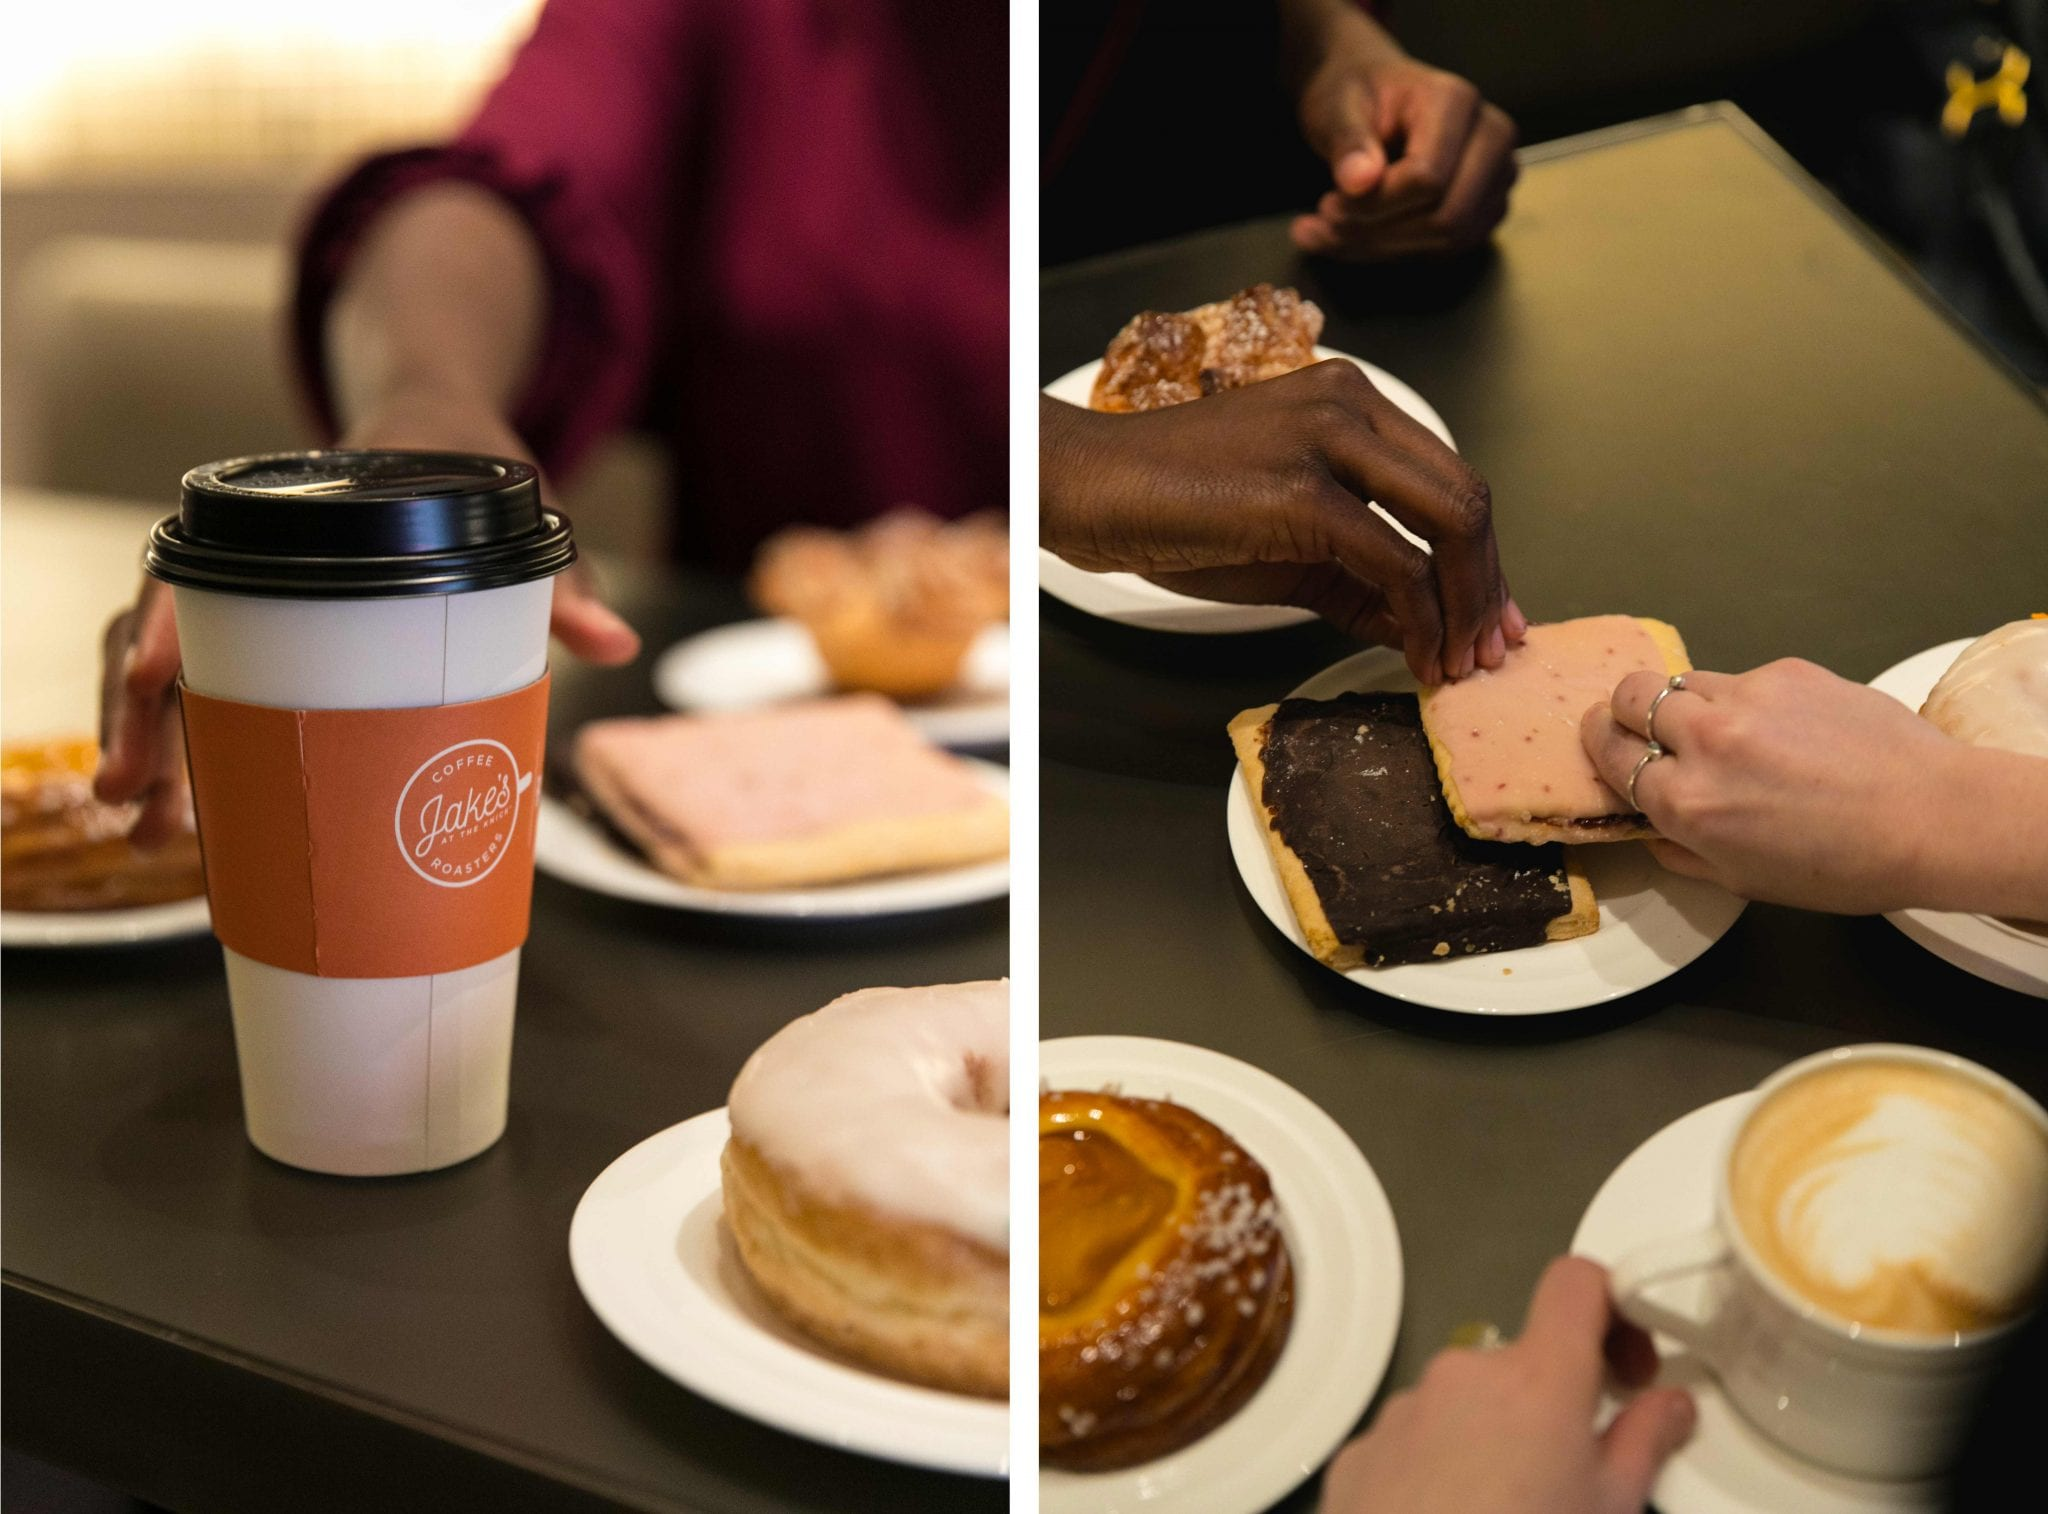 Jake's coffe cup and people sharing various pastries